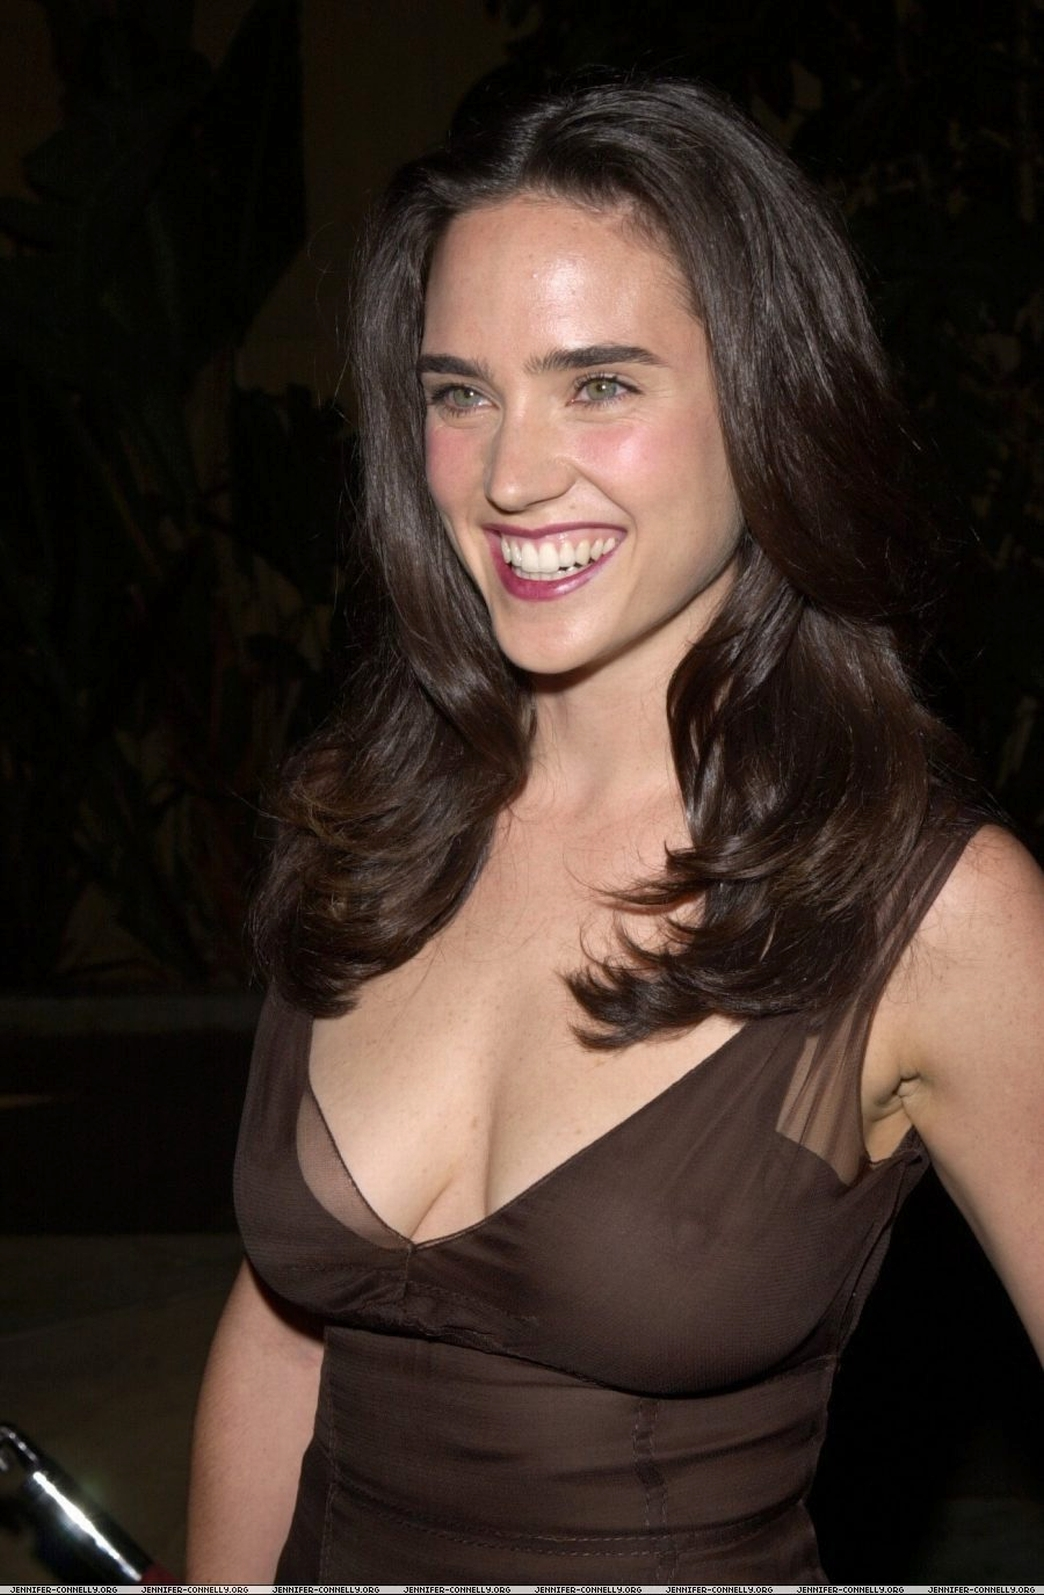 Pussy Pics Jennifer Connelly naked photo 2017